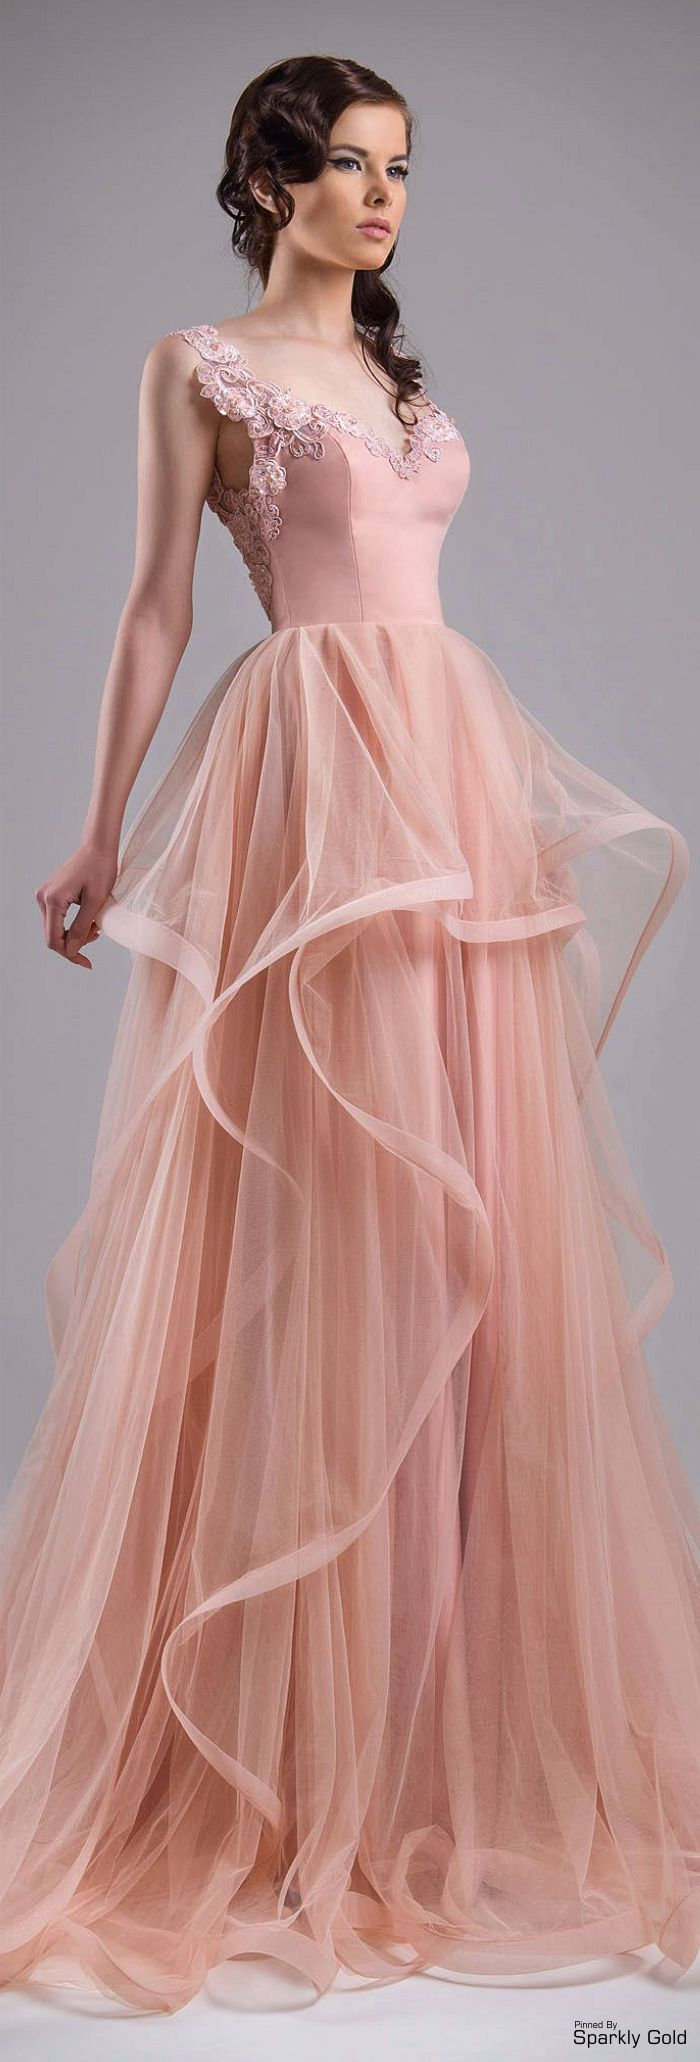 103 best Dress images on Pinterest | Dressing rooms, Evening gowns ...